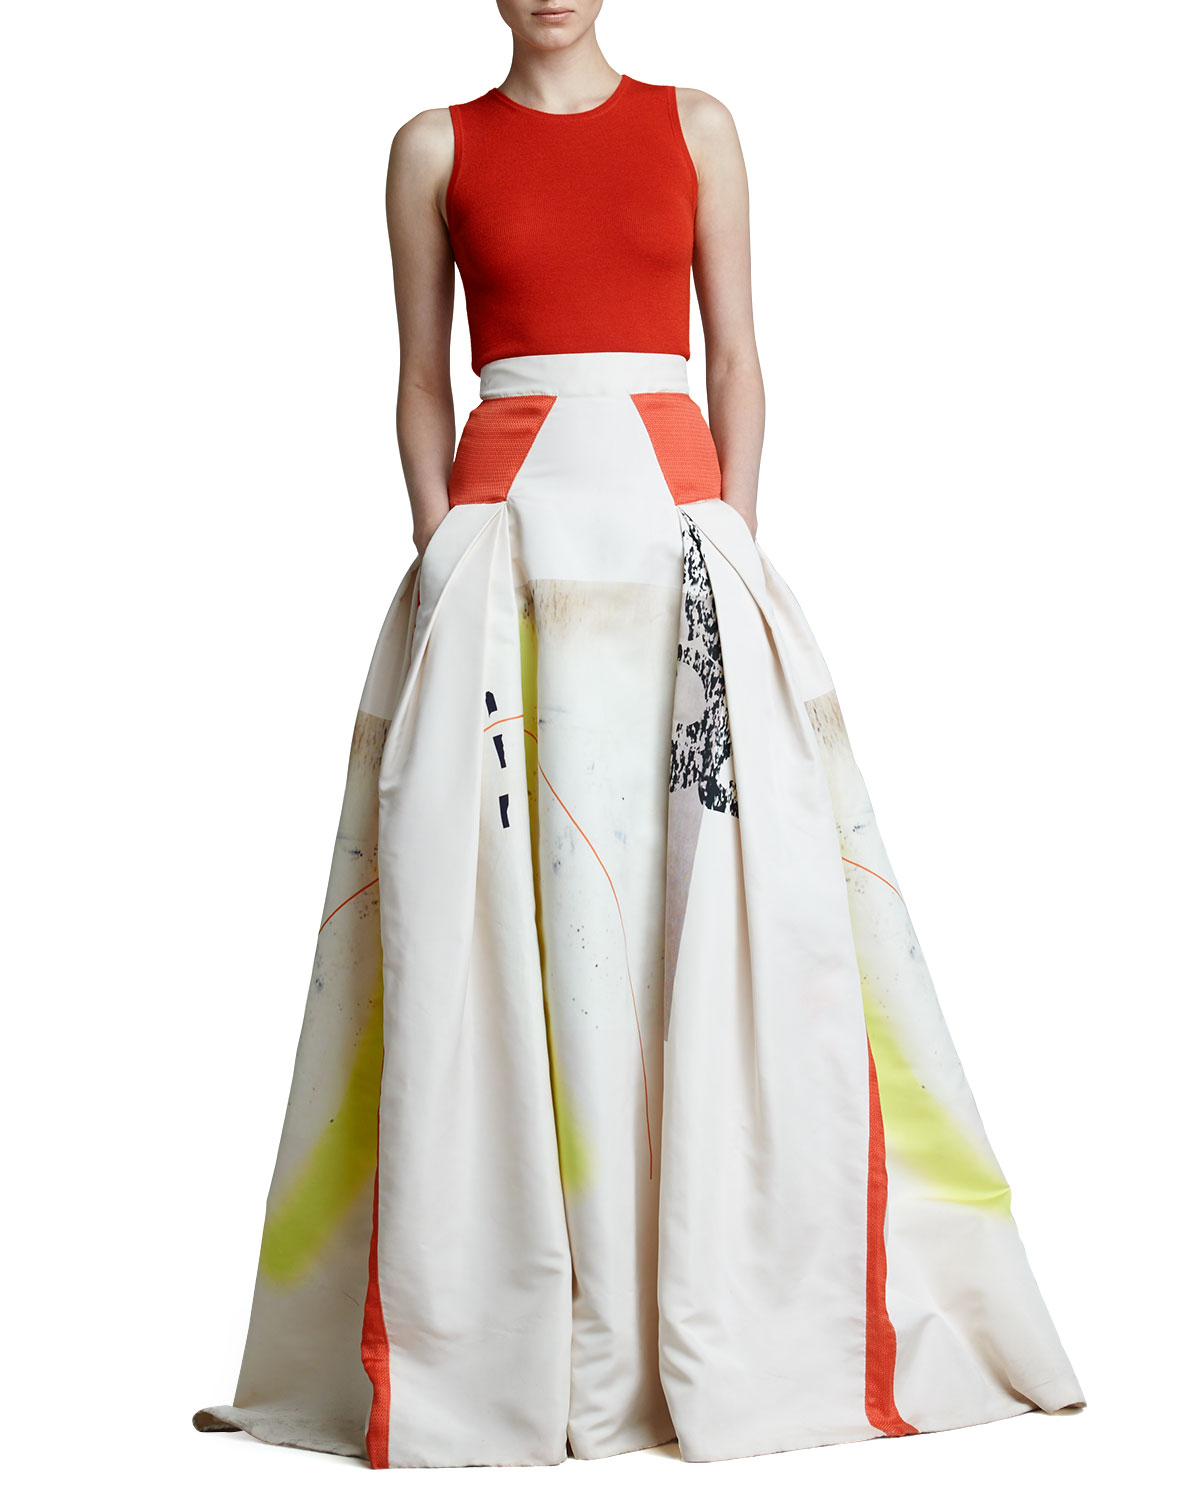 e7fc79c2c18 Carolina Herrera Modern Art Print Ball Skirt in White - Lyst